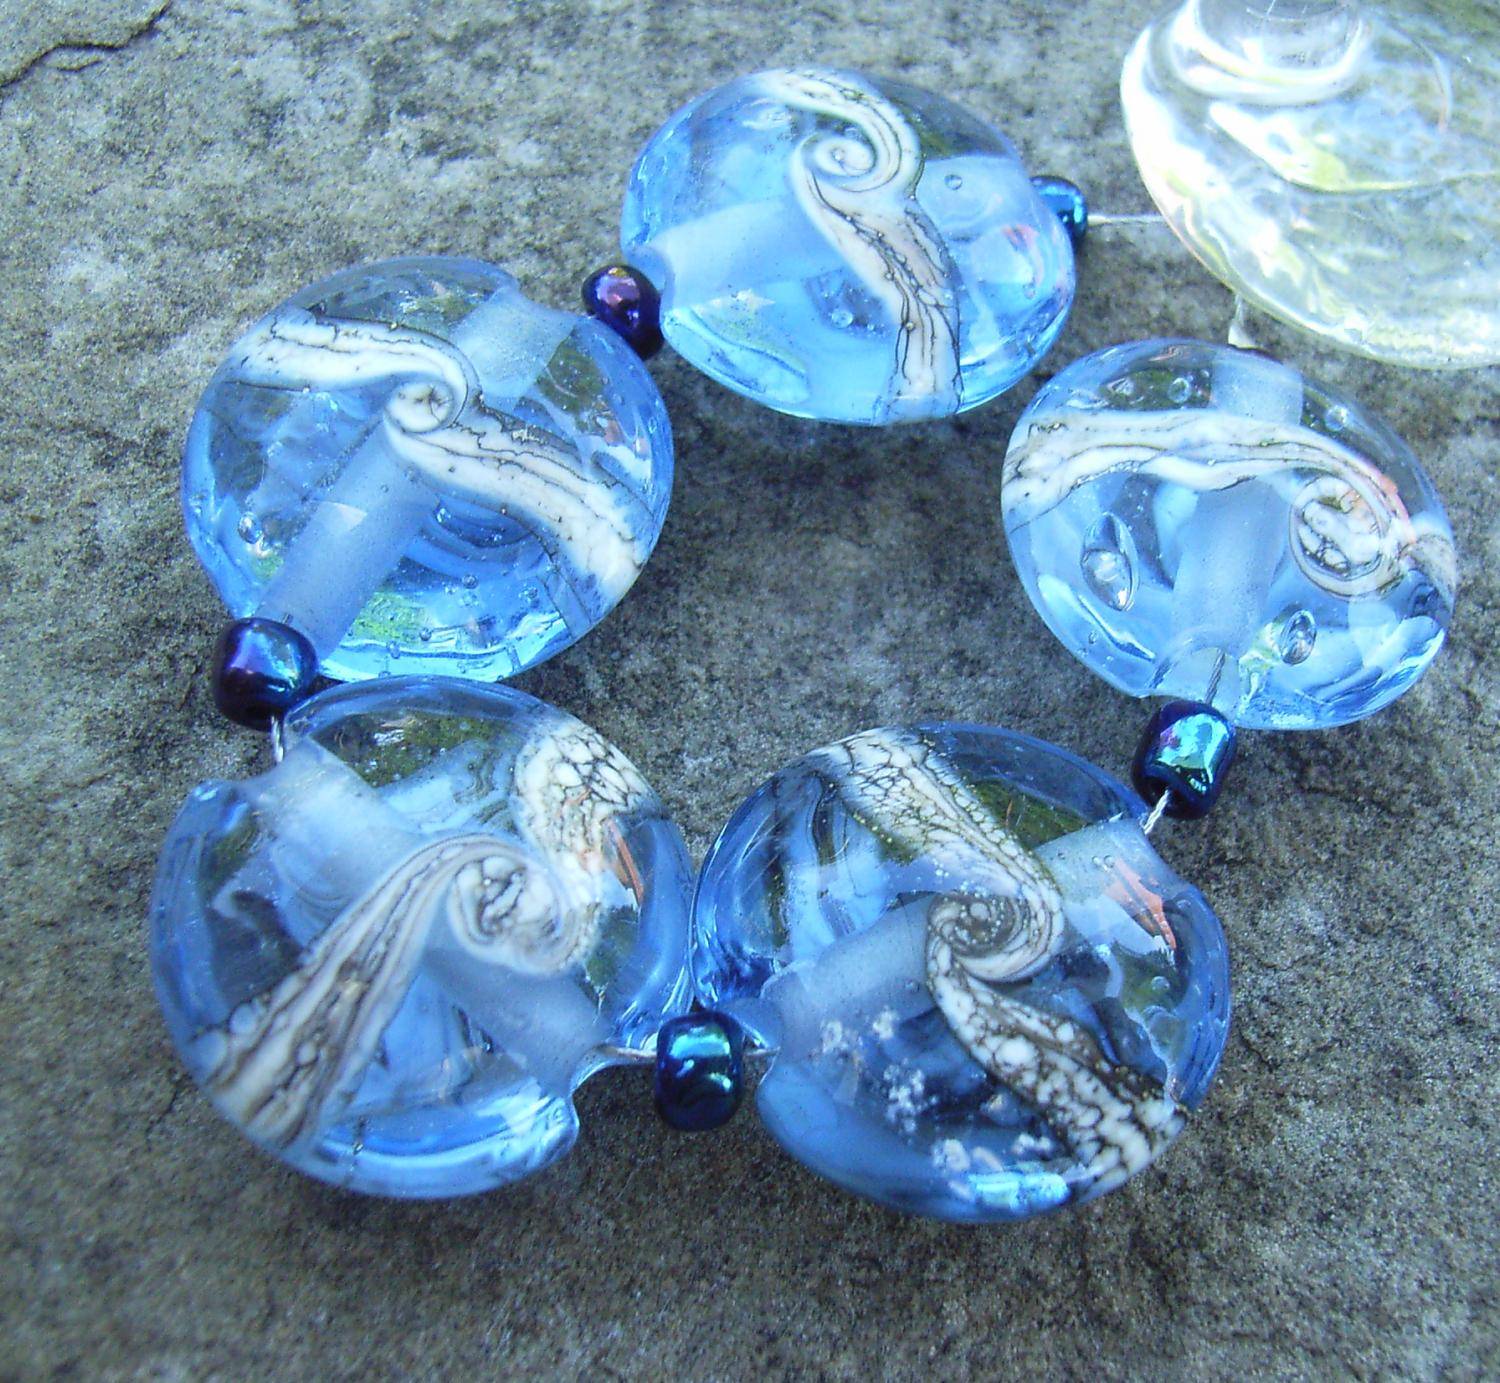 Silvered Ivory Swirl 18mm Light Sapphire Lentil Handmade Artisan Glass Lampwork Beads - By the Bead, (Made to Order)